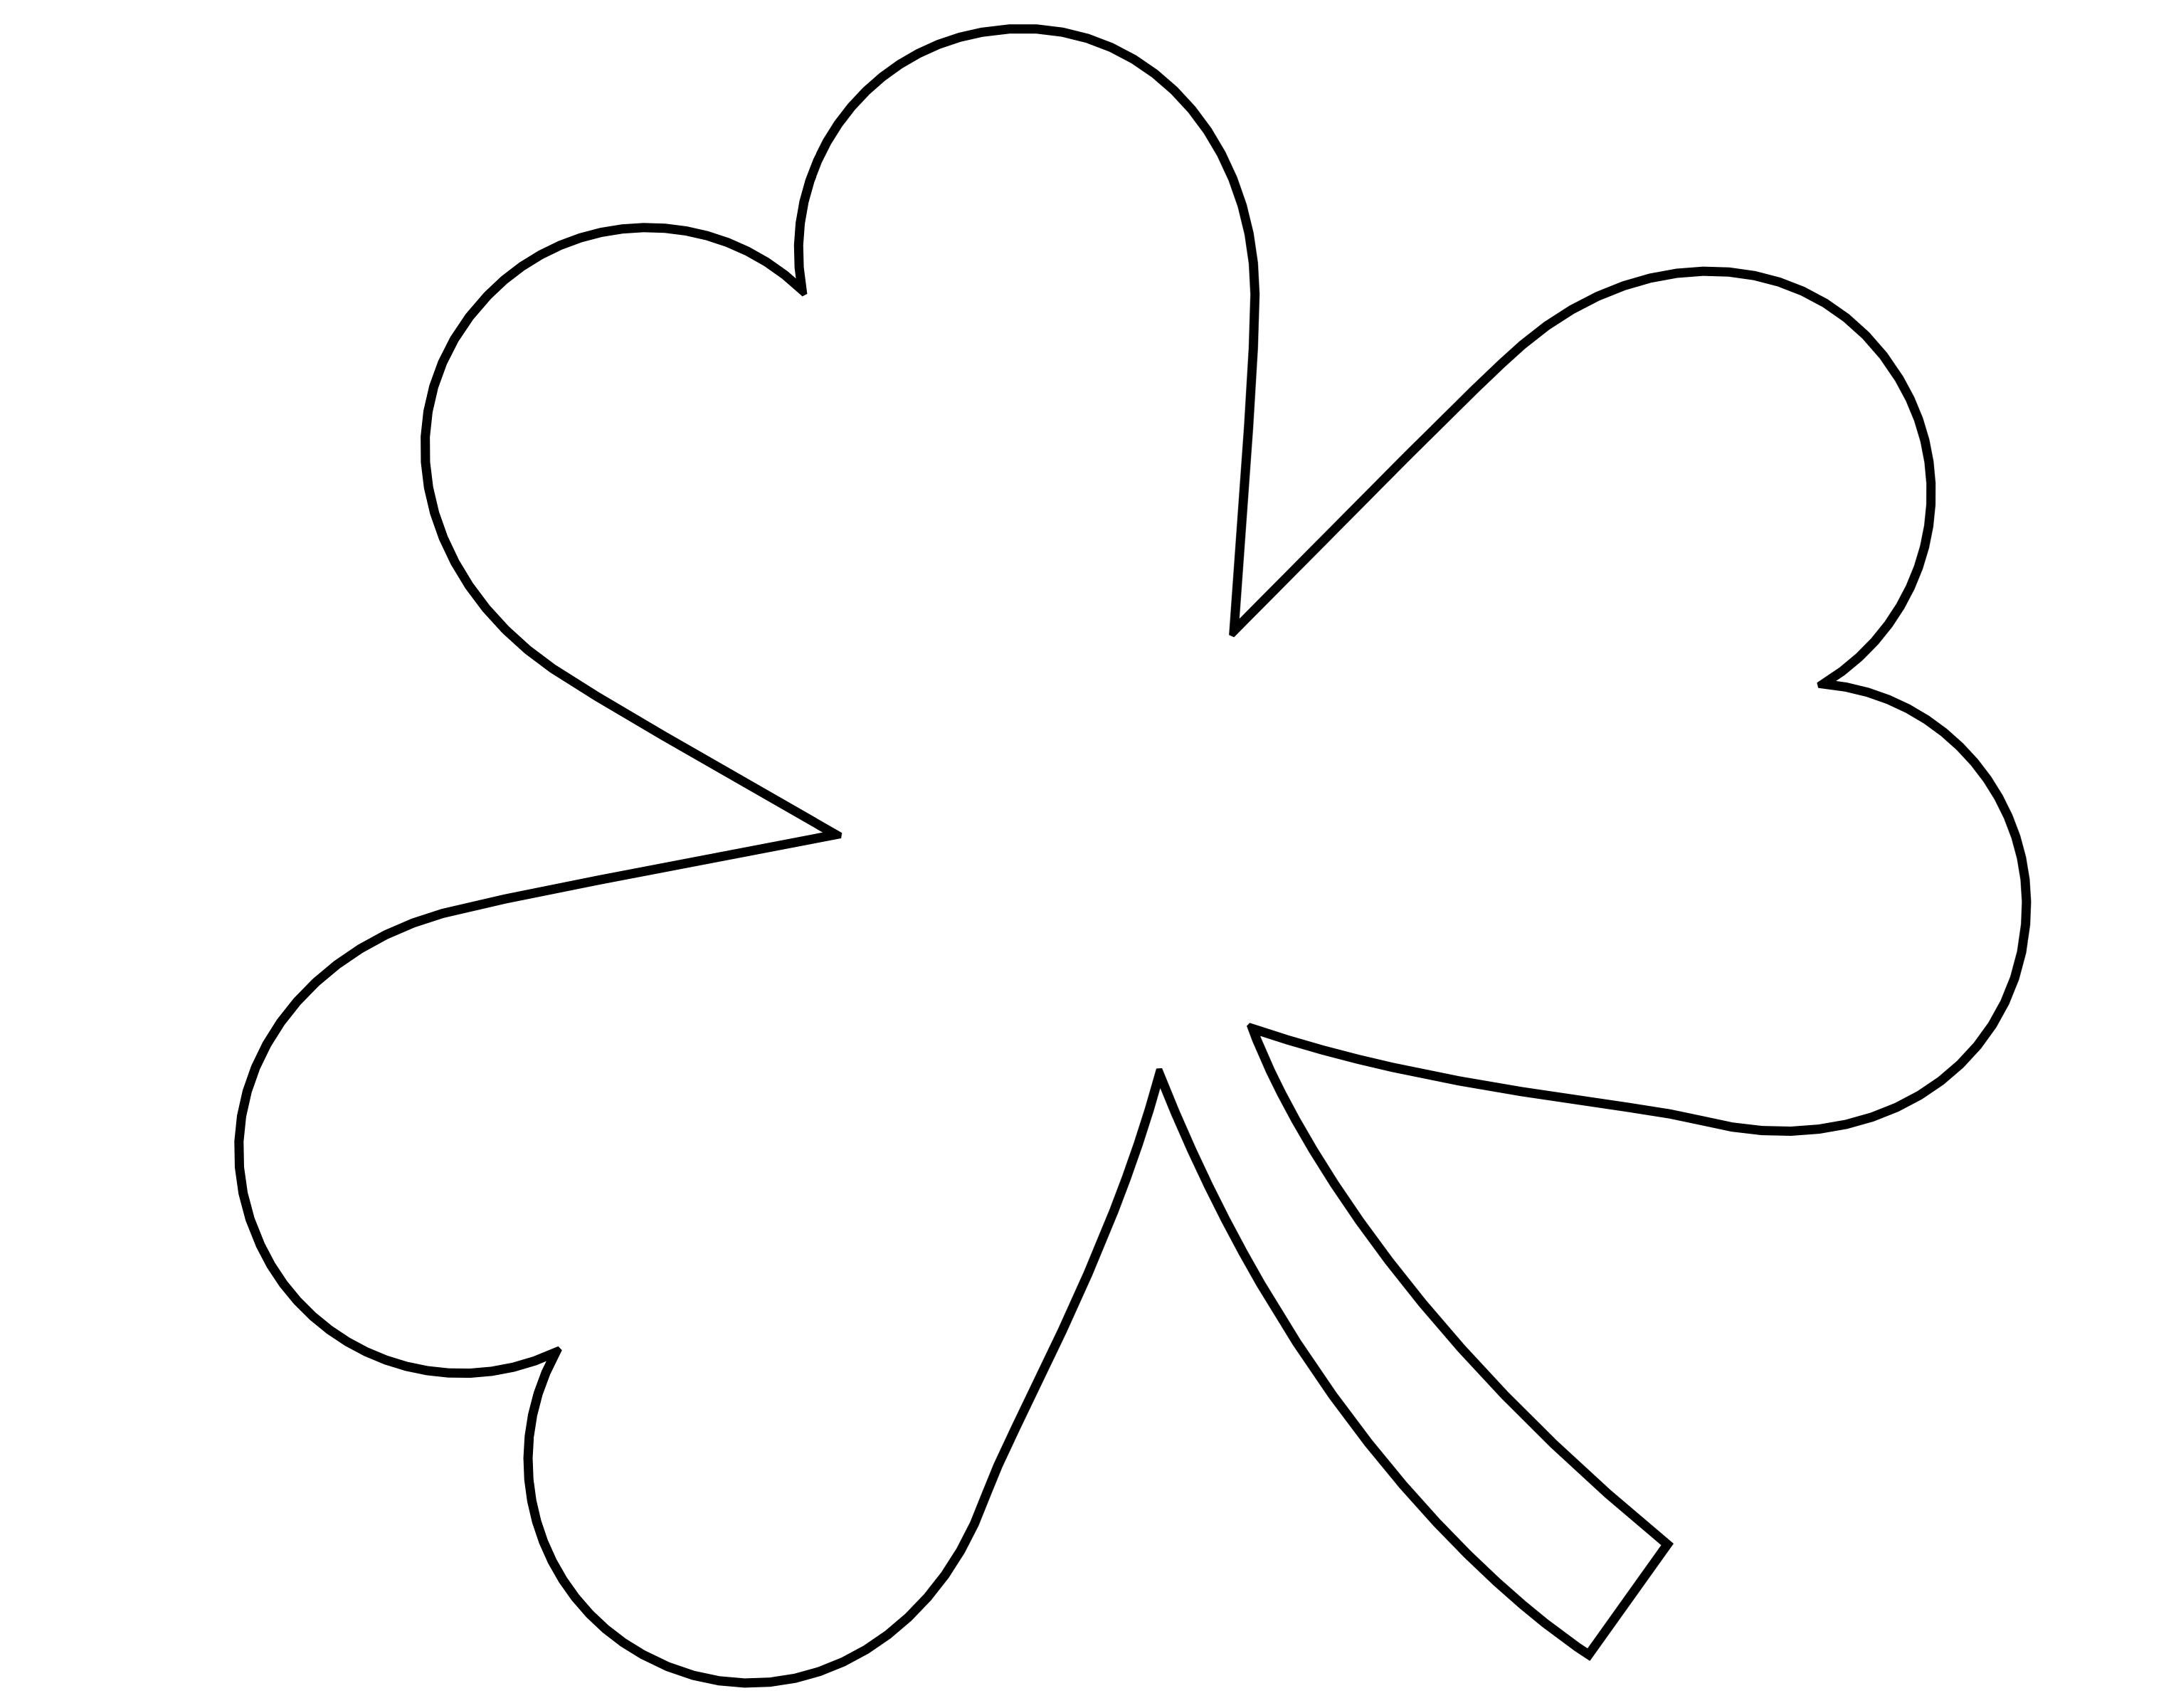 5 Best Images Of Four Leaf Shamrock Template Printable - St - Free Printable Shamrock Cutouts